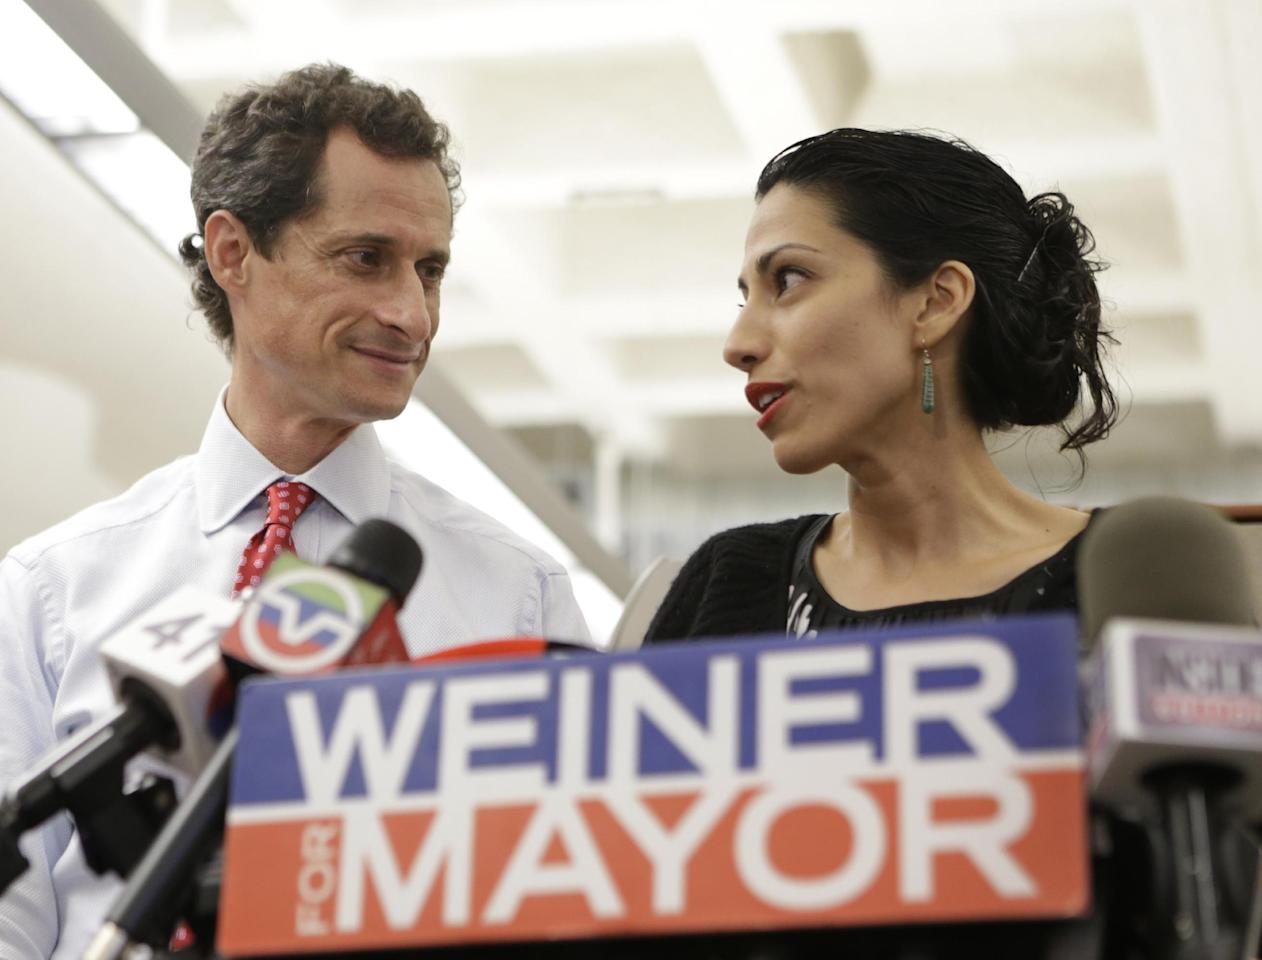 FILE - In this July 23, 2013 photo, Huma Abedin, alongside her husband, New York mayoral candidate Anthony Weiner, speaks during a news conference at the Gay Men's Health Crisis headquarters in New York. When Abedin's name and face first started appearing in the media six years ago, lots of people couldn't help but wonder what this beautiful, ambitious woman with high-fashion sense and a world-class rolodex saw in Anthony Weiner. That's a question New Yorkers are asking themselves again. (AP Photo/Kathy Willens, File)